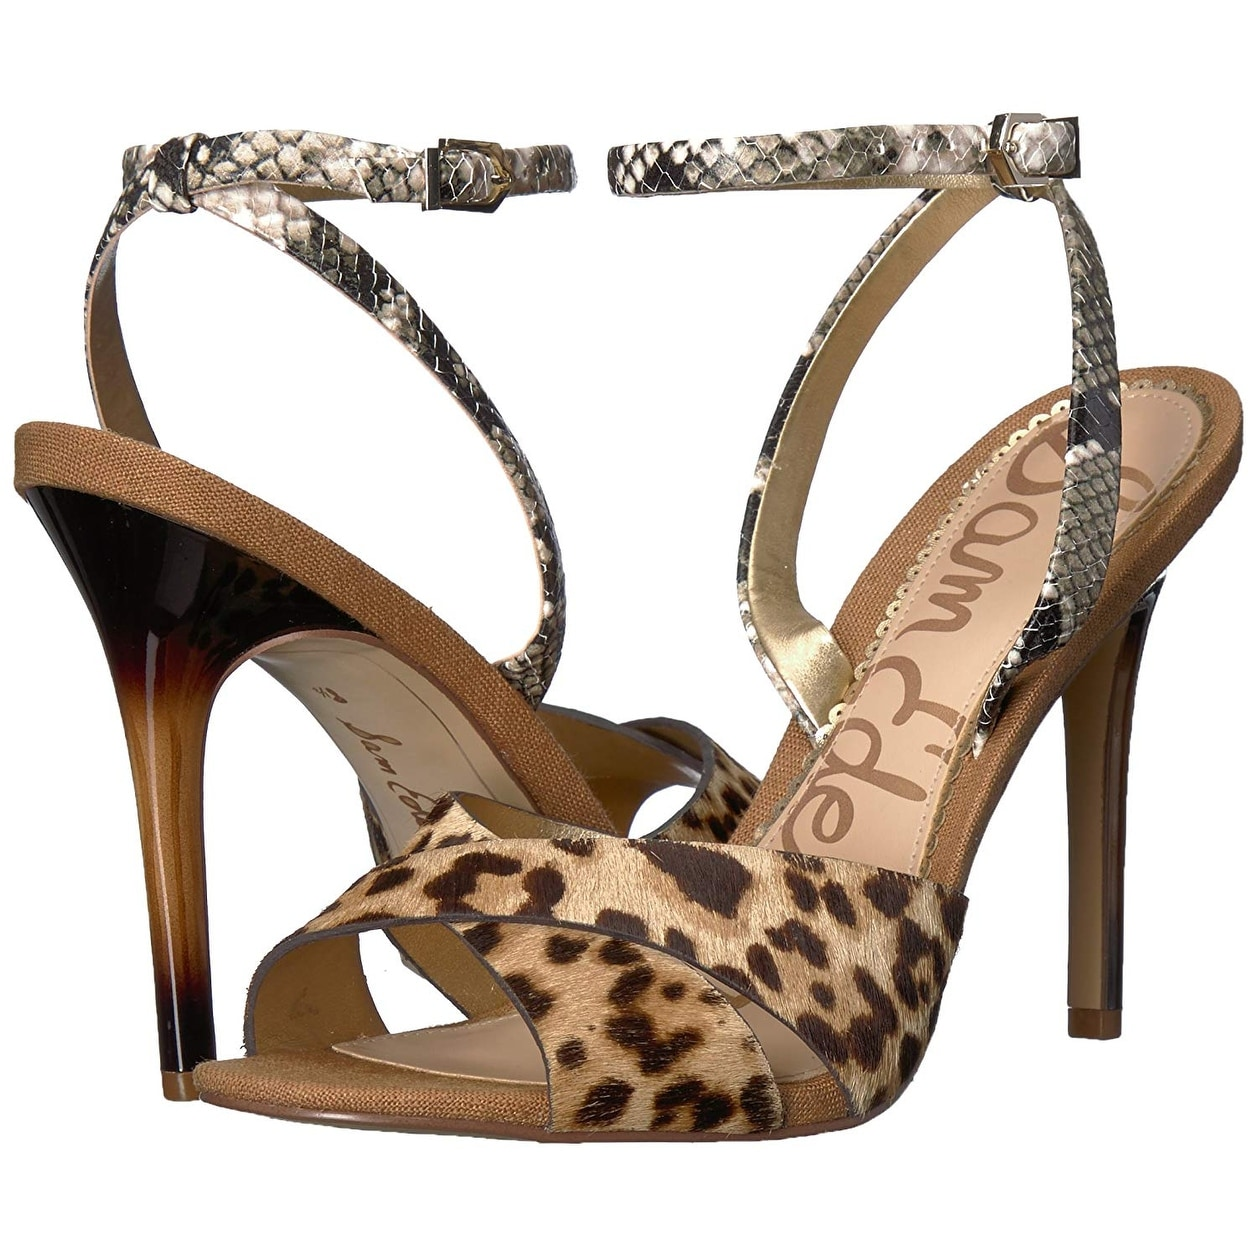 457b9ad8582 Shop Sam Edelman Womens Aly Open Toe Casual Slingback Sandals - Sand - Free  Shipping Today - Overstock.com - 24307104